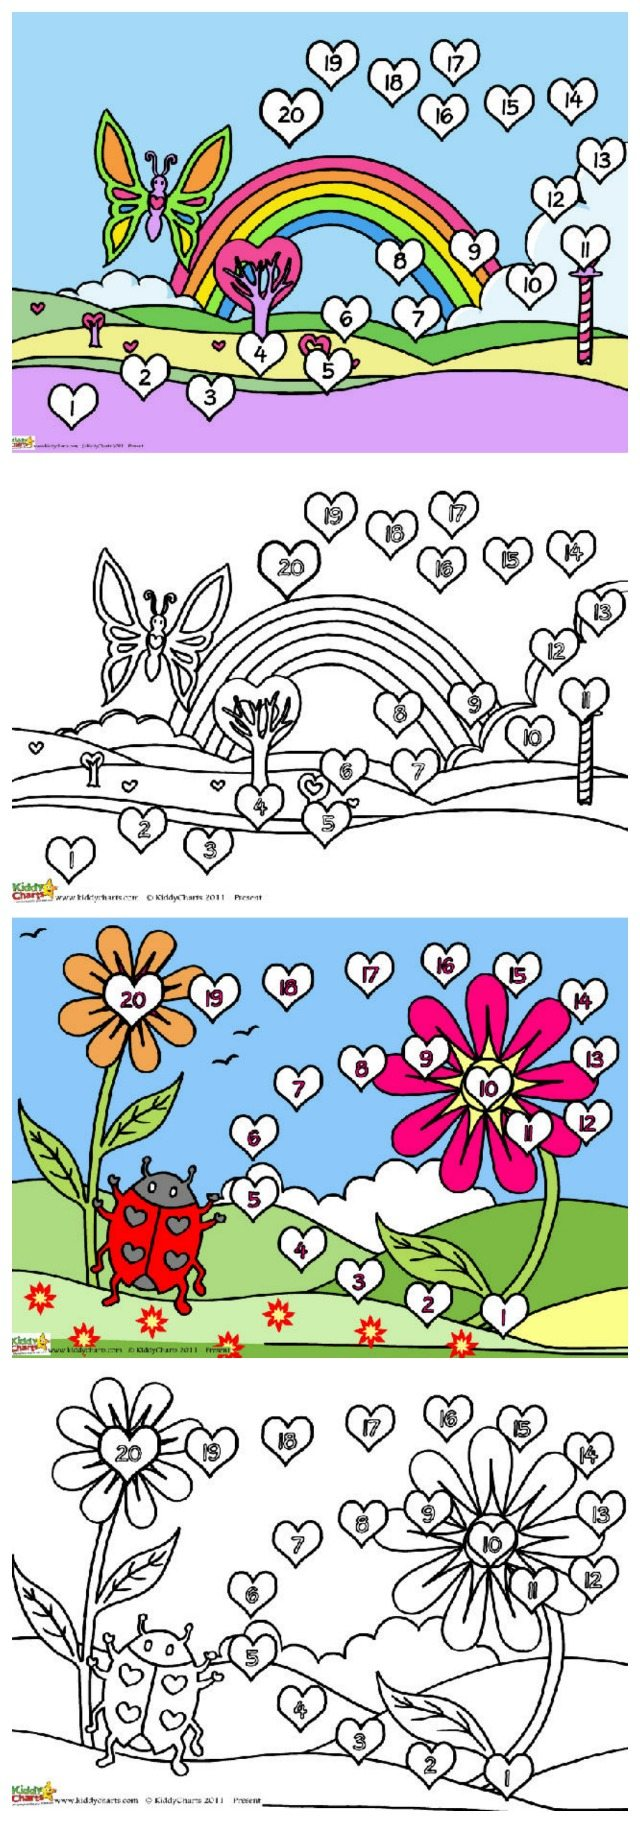 Colouring in reward charts - Download These Two Valentine Reward Chart Designs You Can Get The Kids To Colour Them